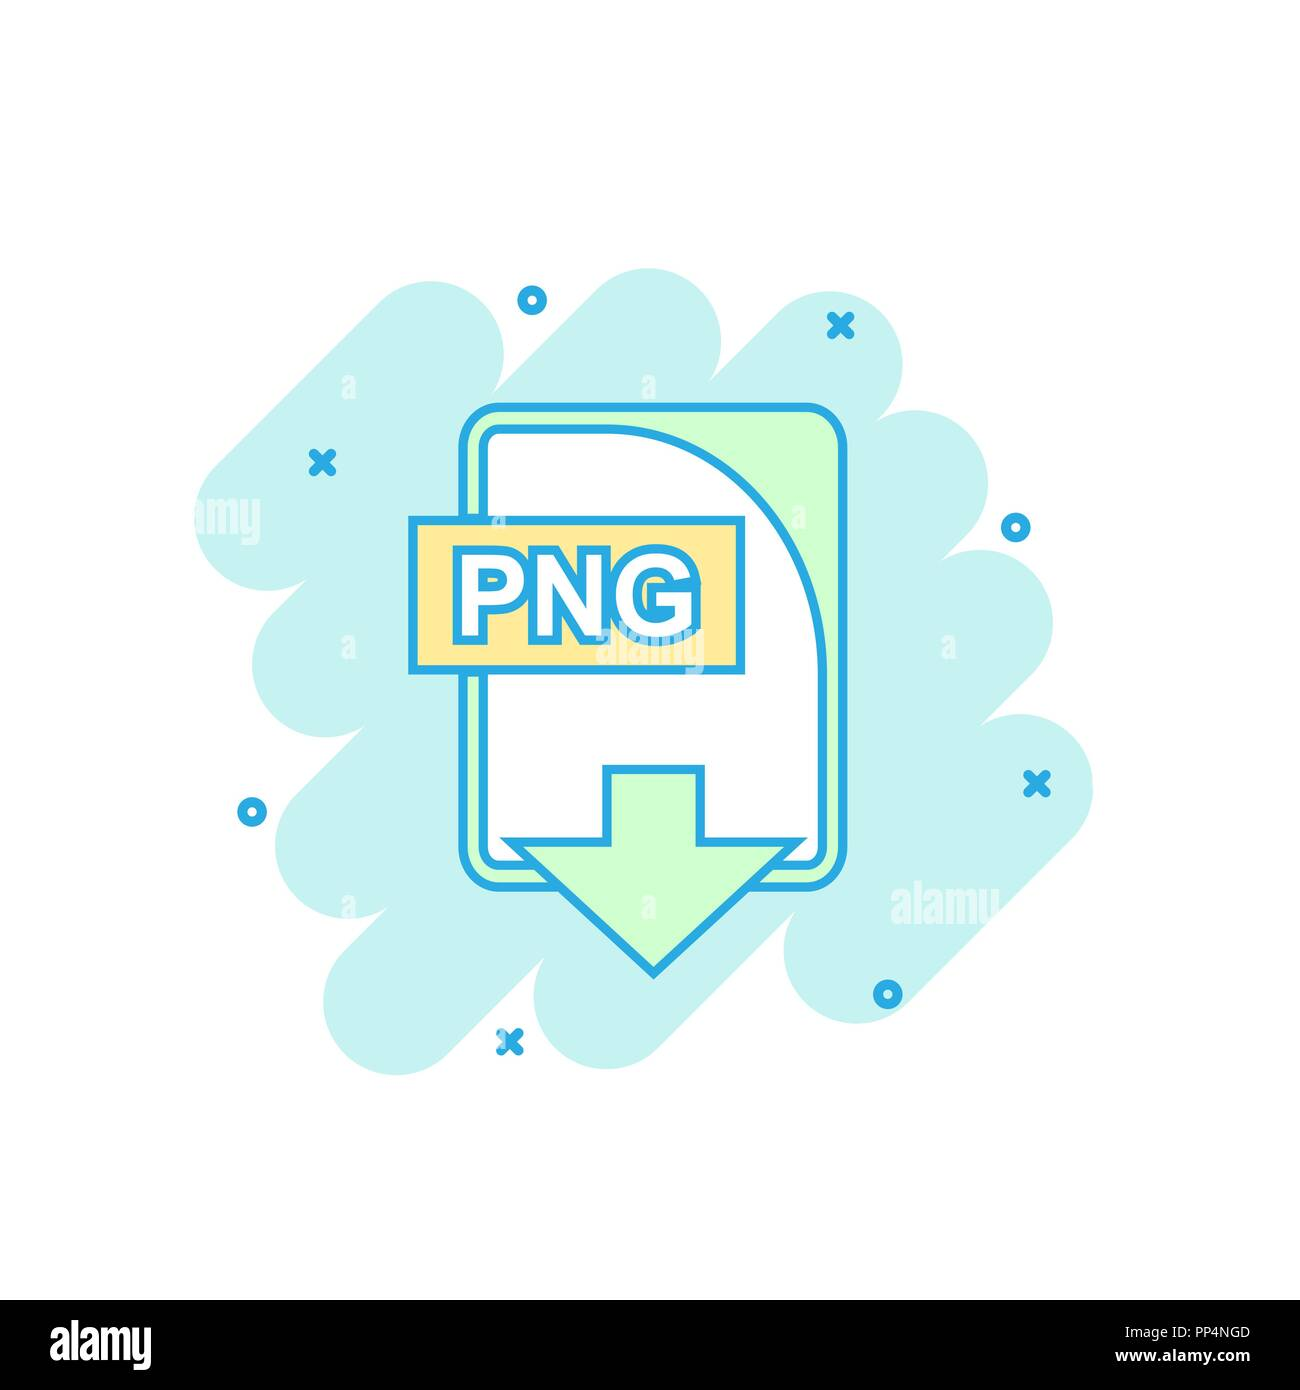 images?q=tbn:ANd9GcQh_l3eQ5xwiPy07kGEXjmjgmBKBRB7H2mRxCGhv1tFWg5c_mWT Awesome Vector Art Png File @bookmarkpages.info